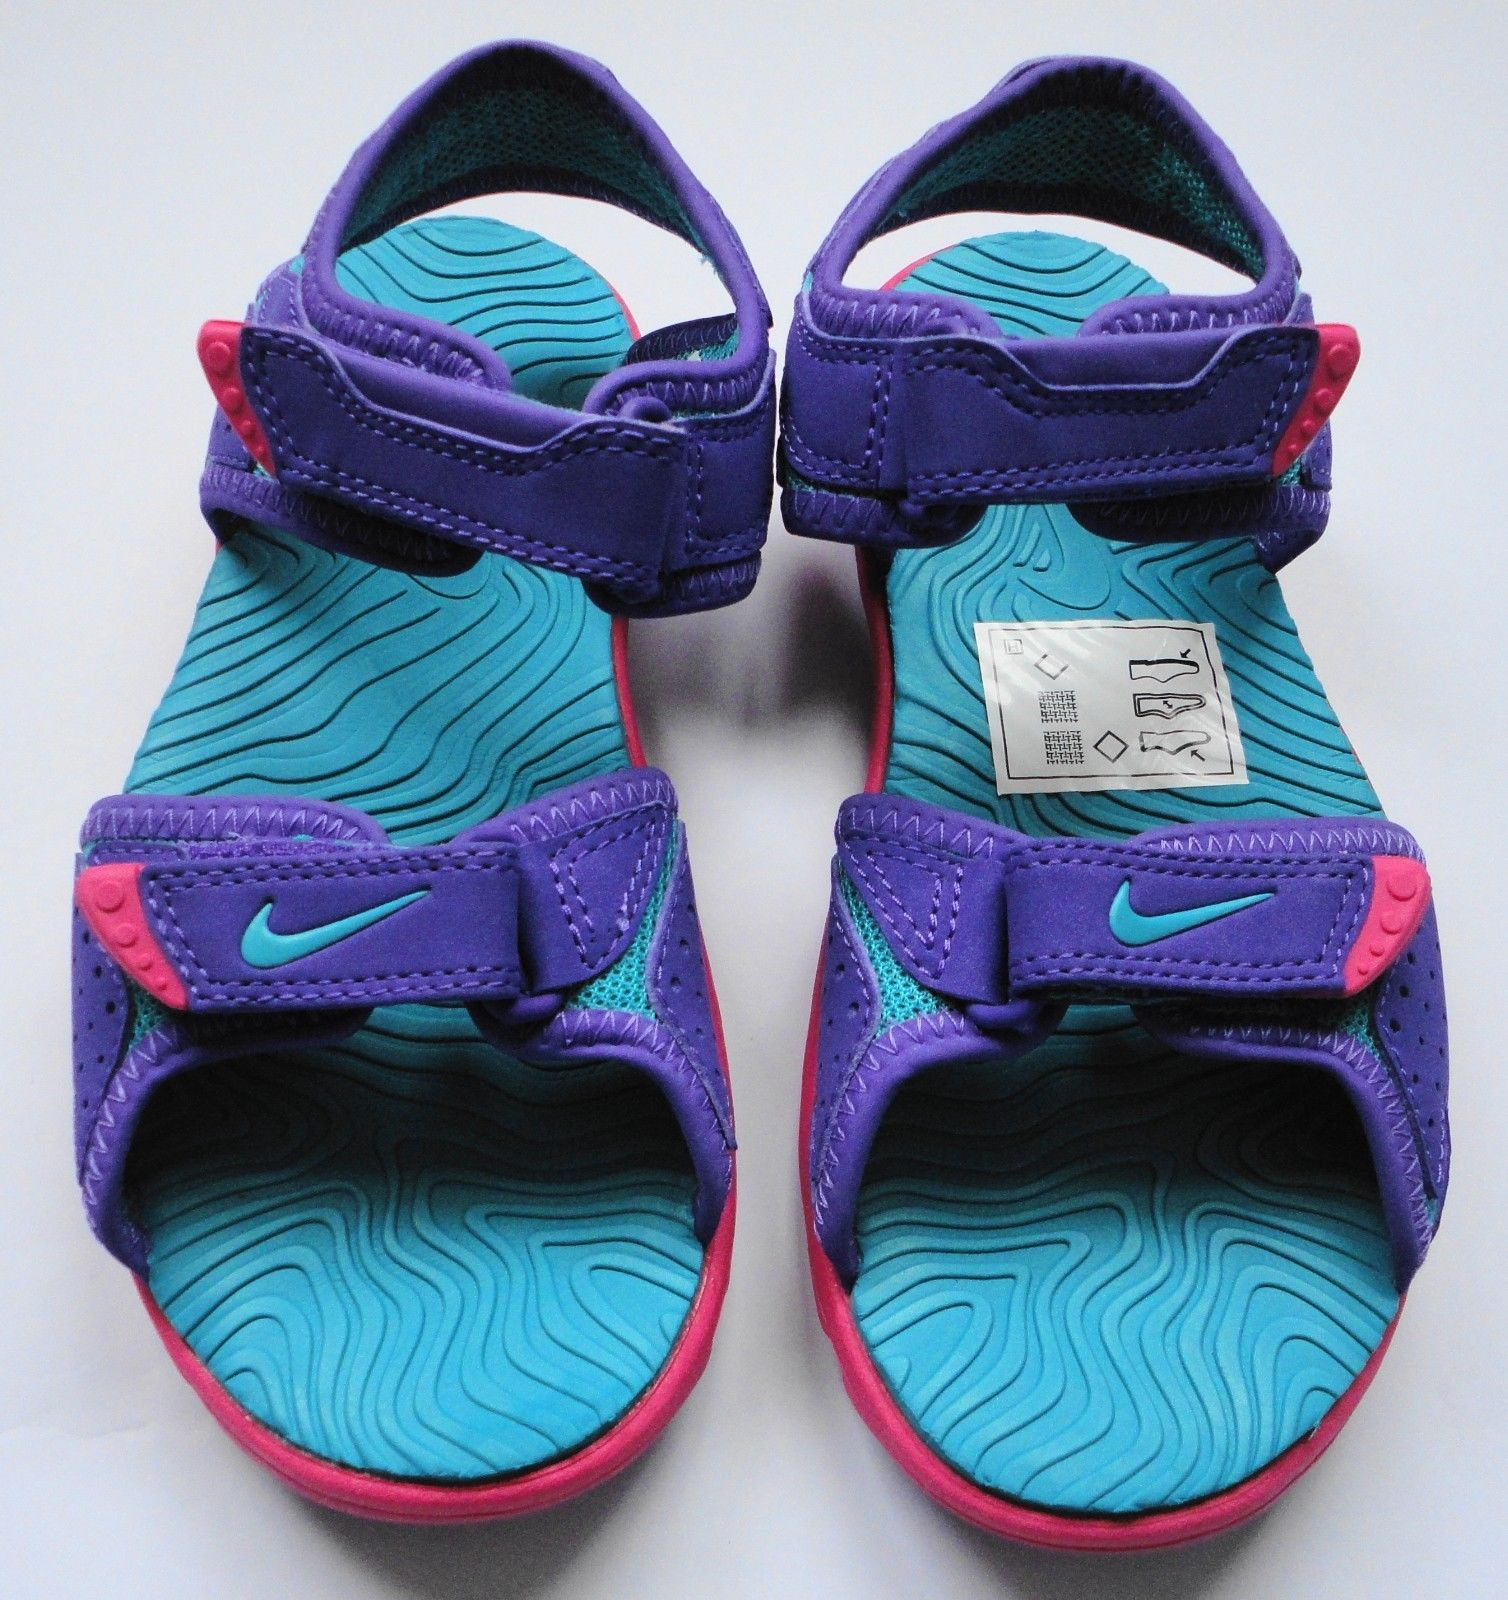 2e175980 ... sale nike santiam 5 gs lilla sandals girls size 13.5 new unused b662a  29354